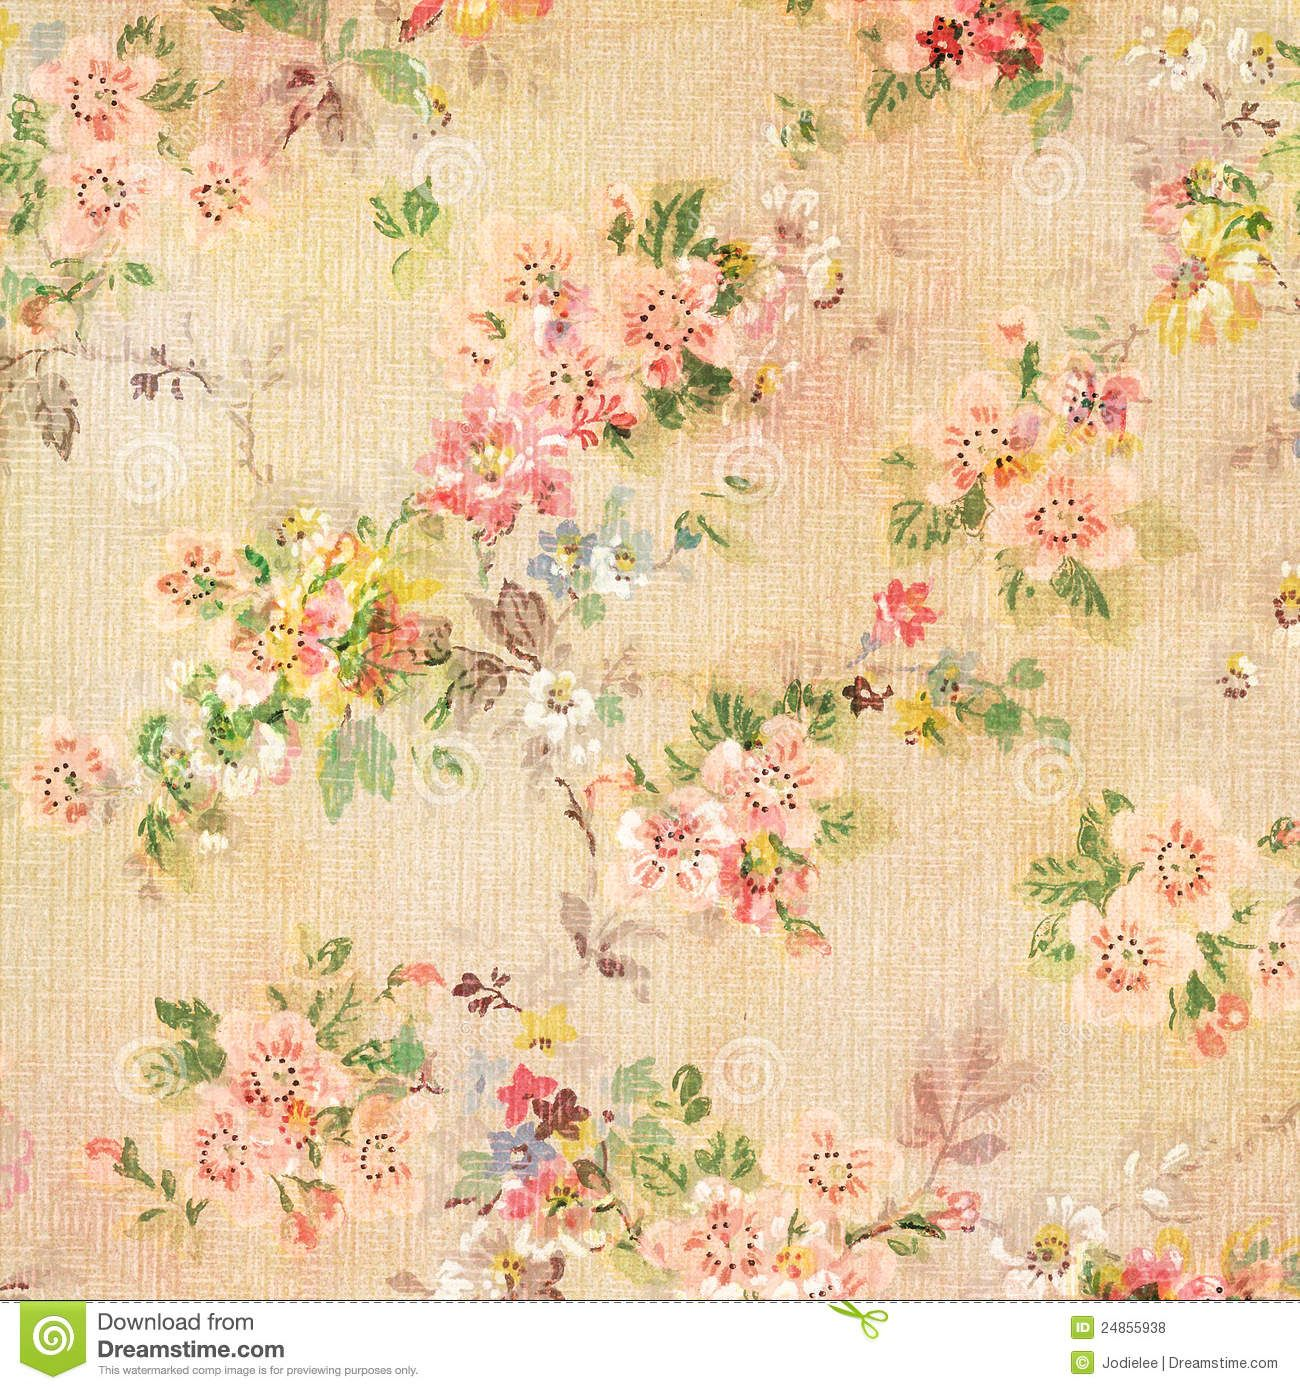 Shabby Chic Vintage Antique Rose Floral Wallpaper Royalty ...